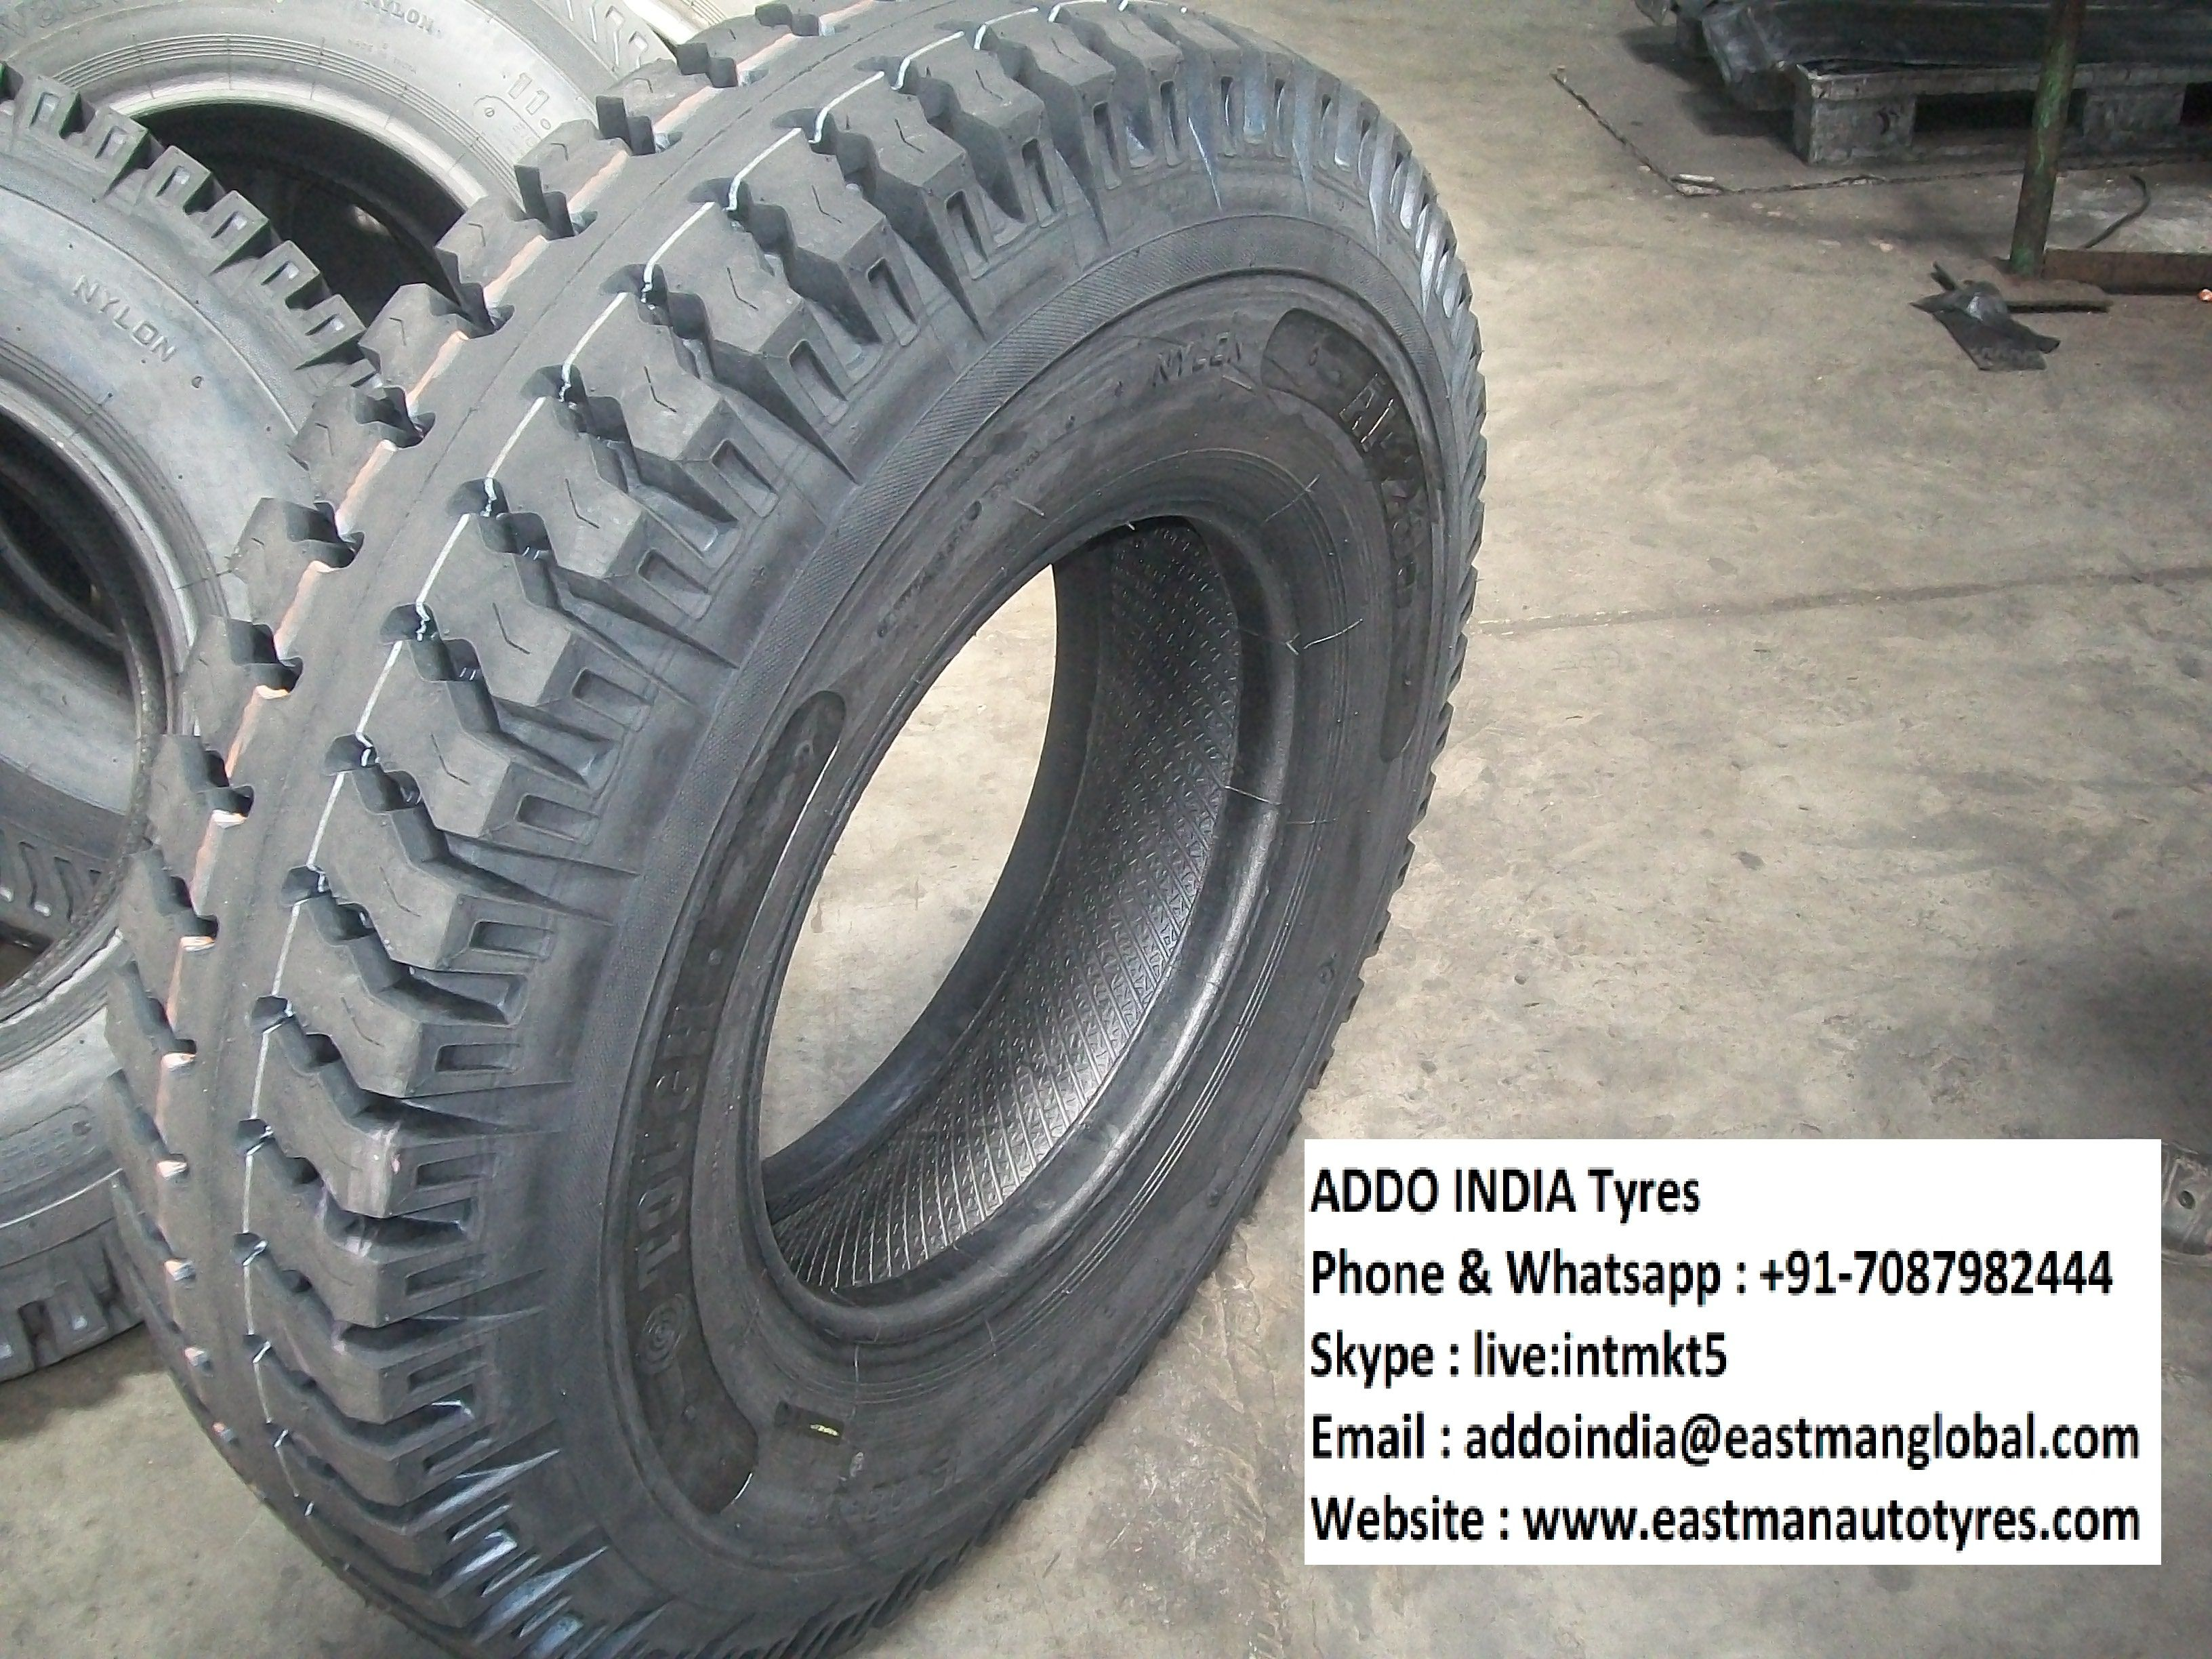 Pin On Addo India Tyres